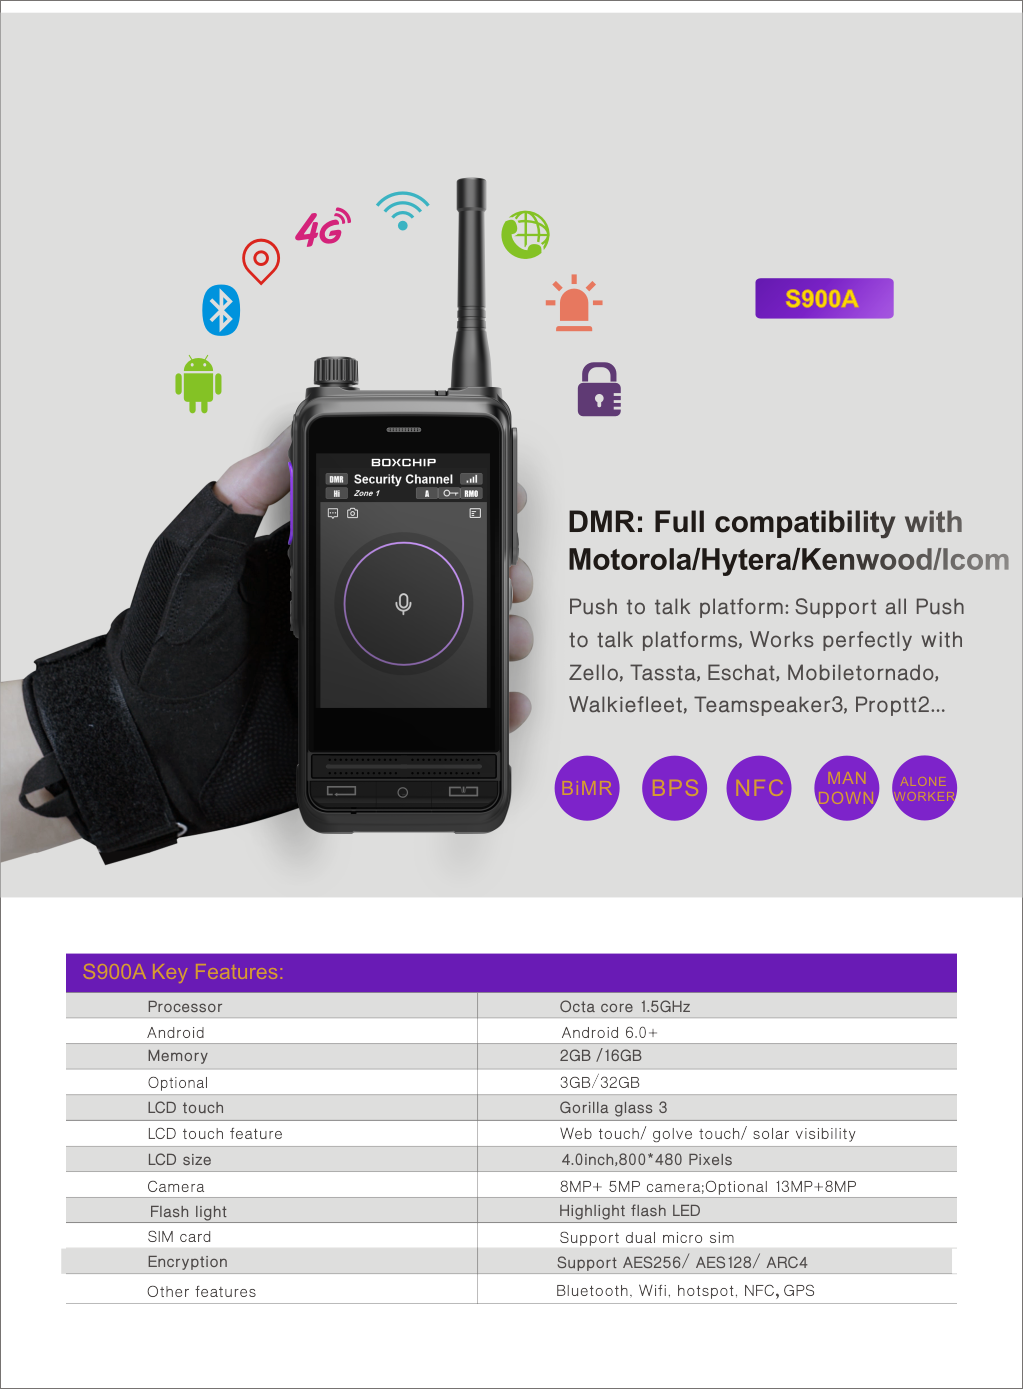 S900A DMR & 4G LTE Multimode PTT-Over-Cellular all in One Network Radio